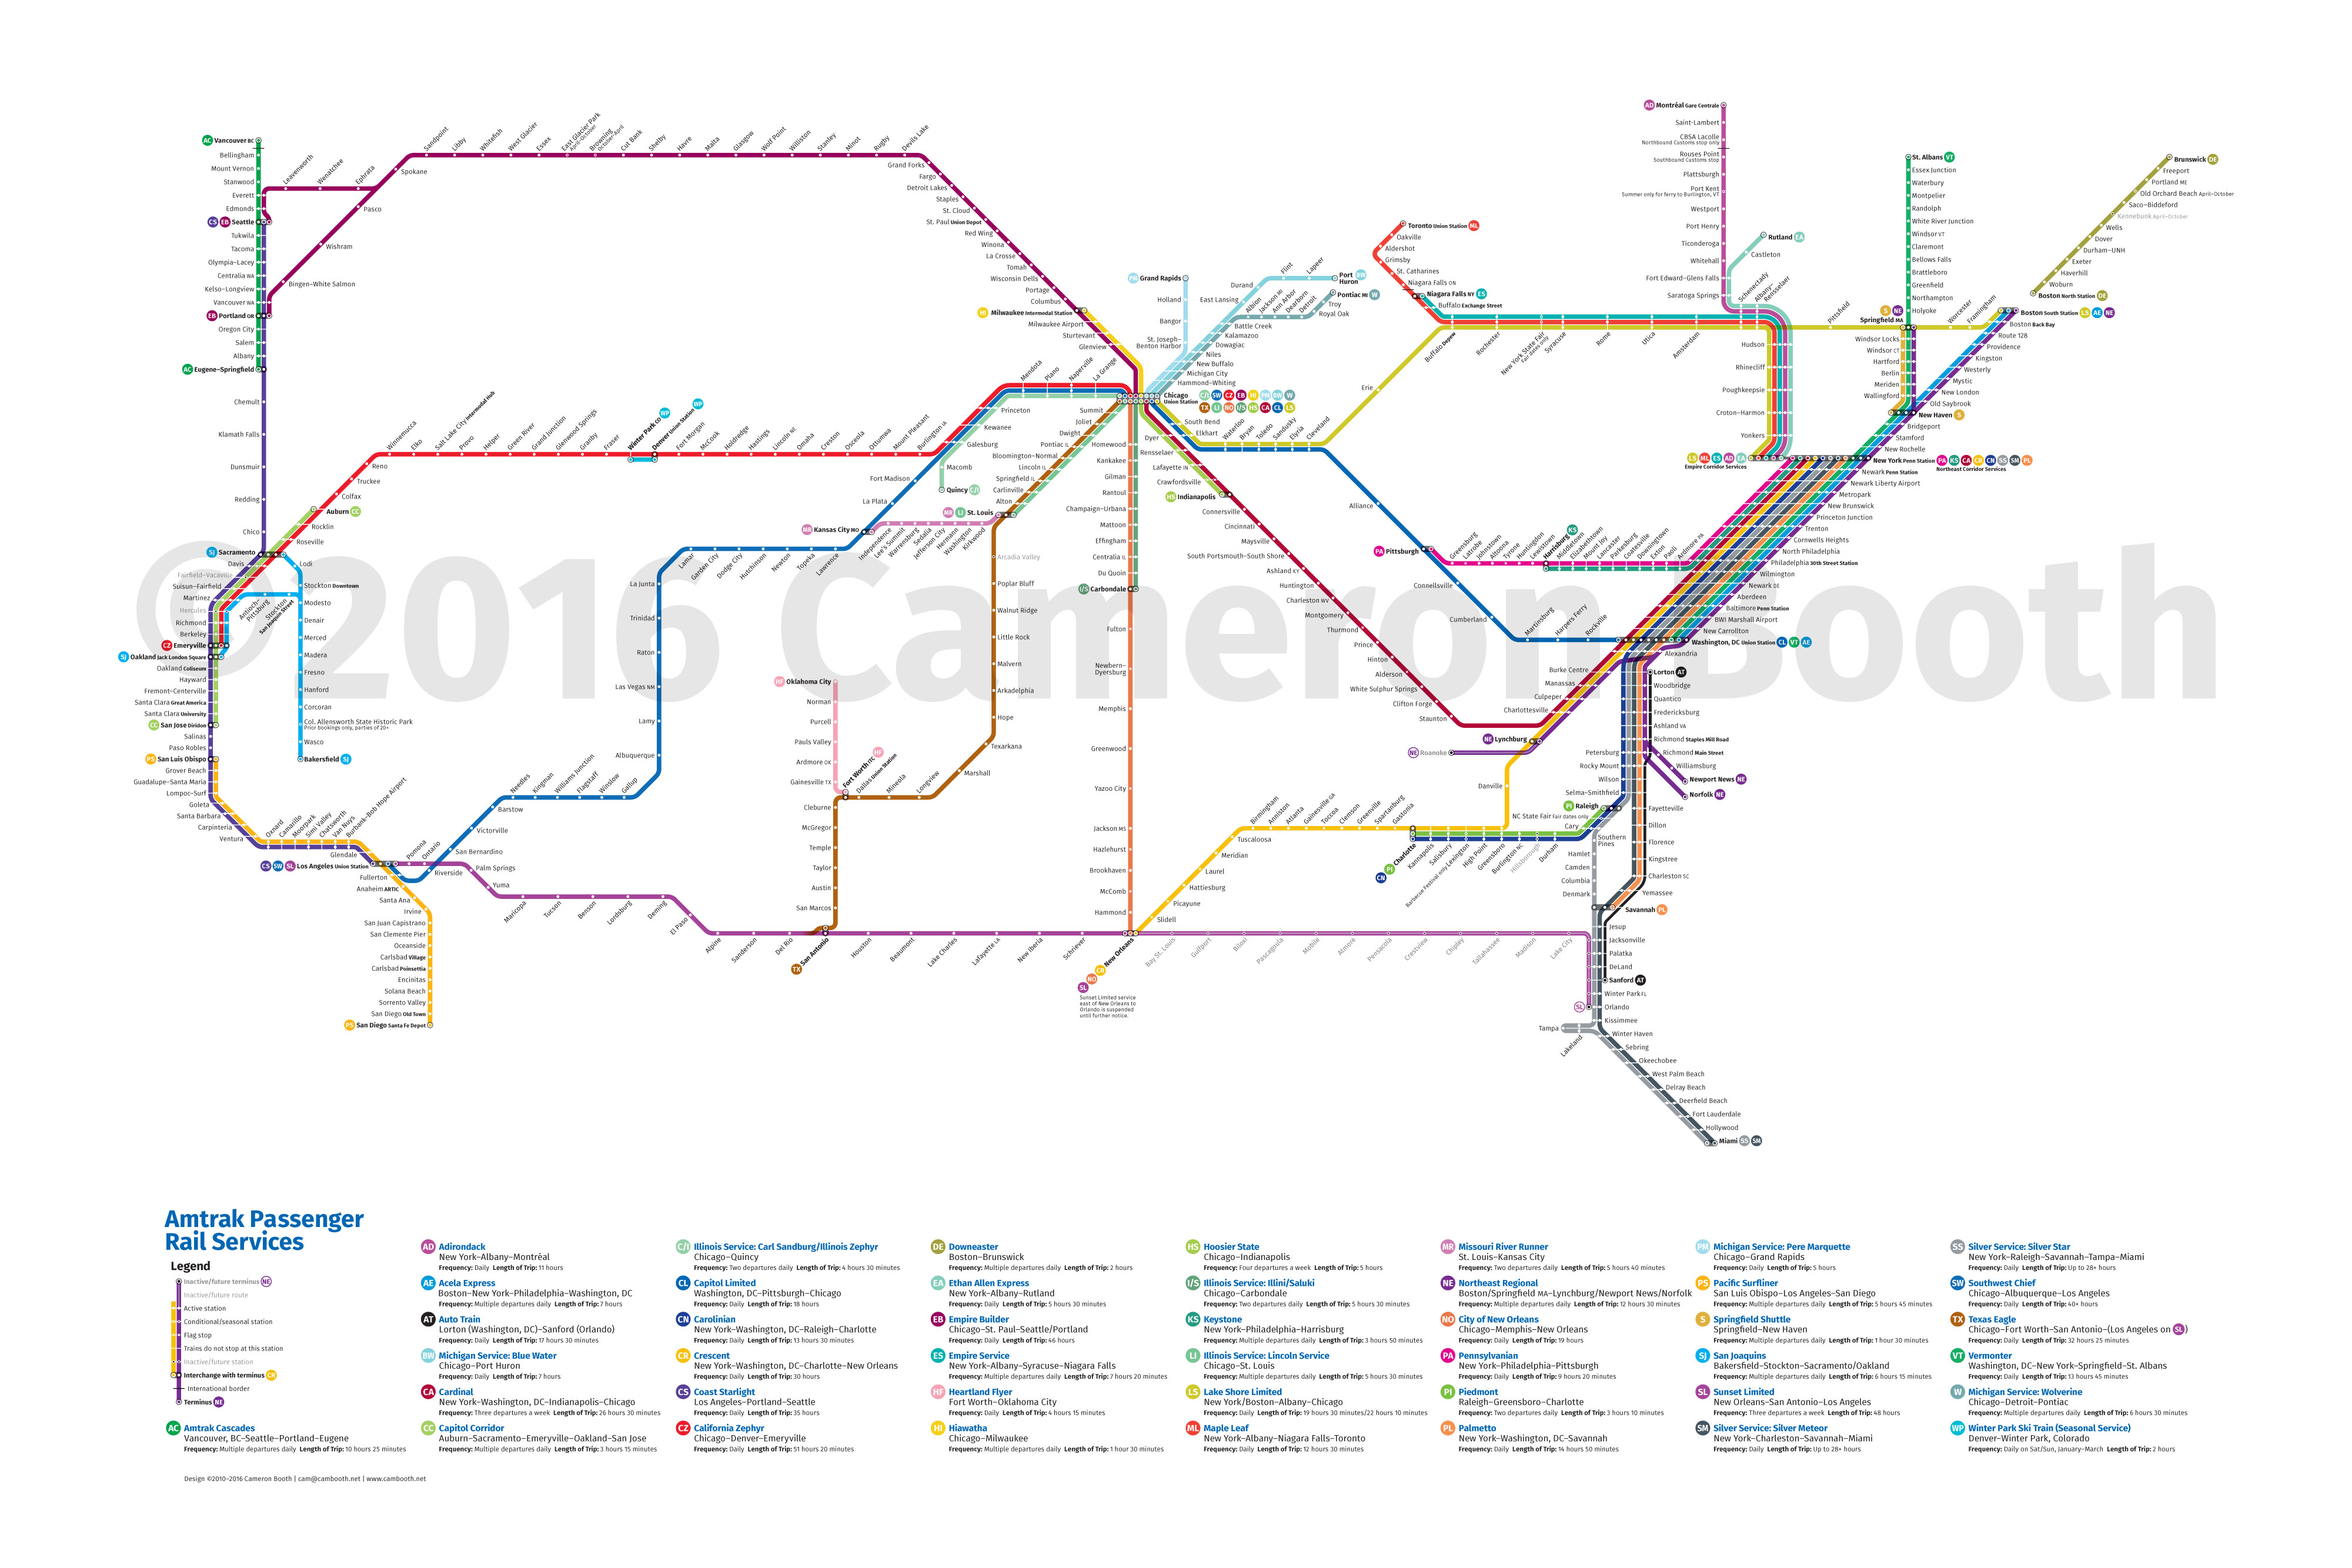 2016 Amtrak Subway Map – Large – Cameron Booth - Amtrak Texas Eagle Route Map